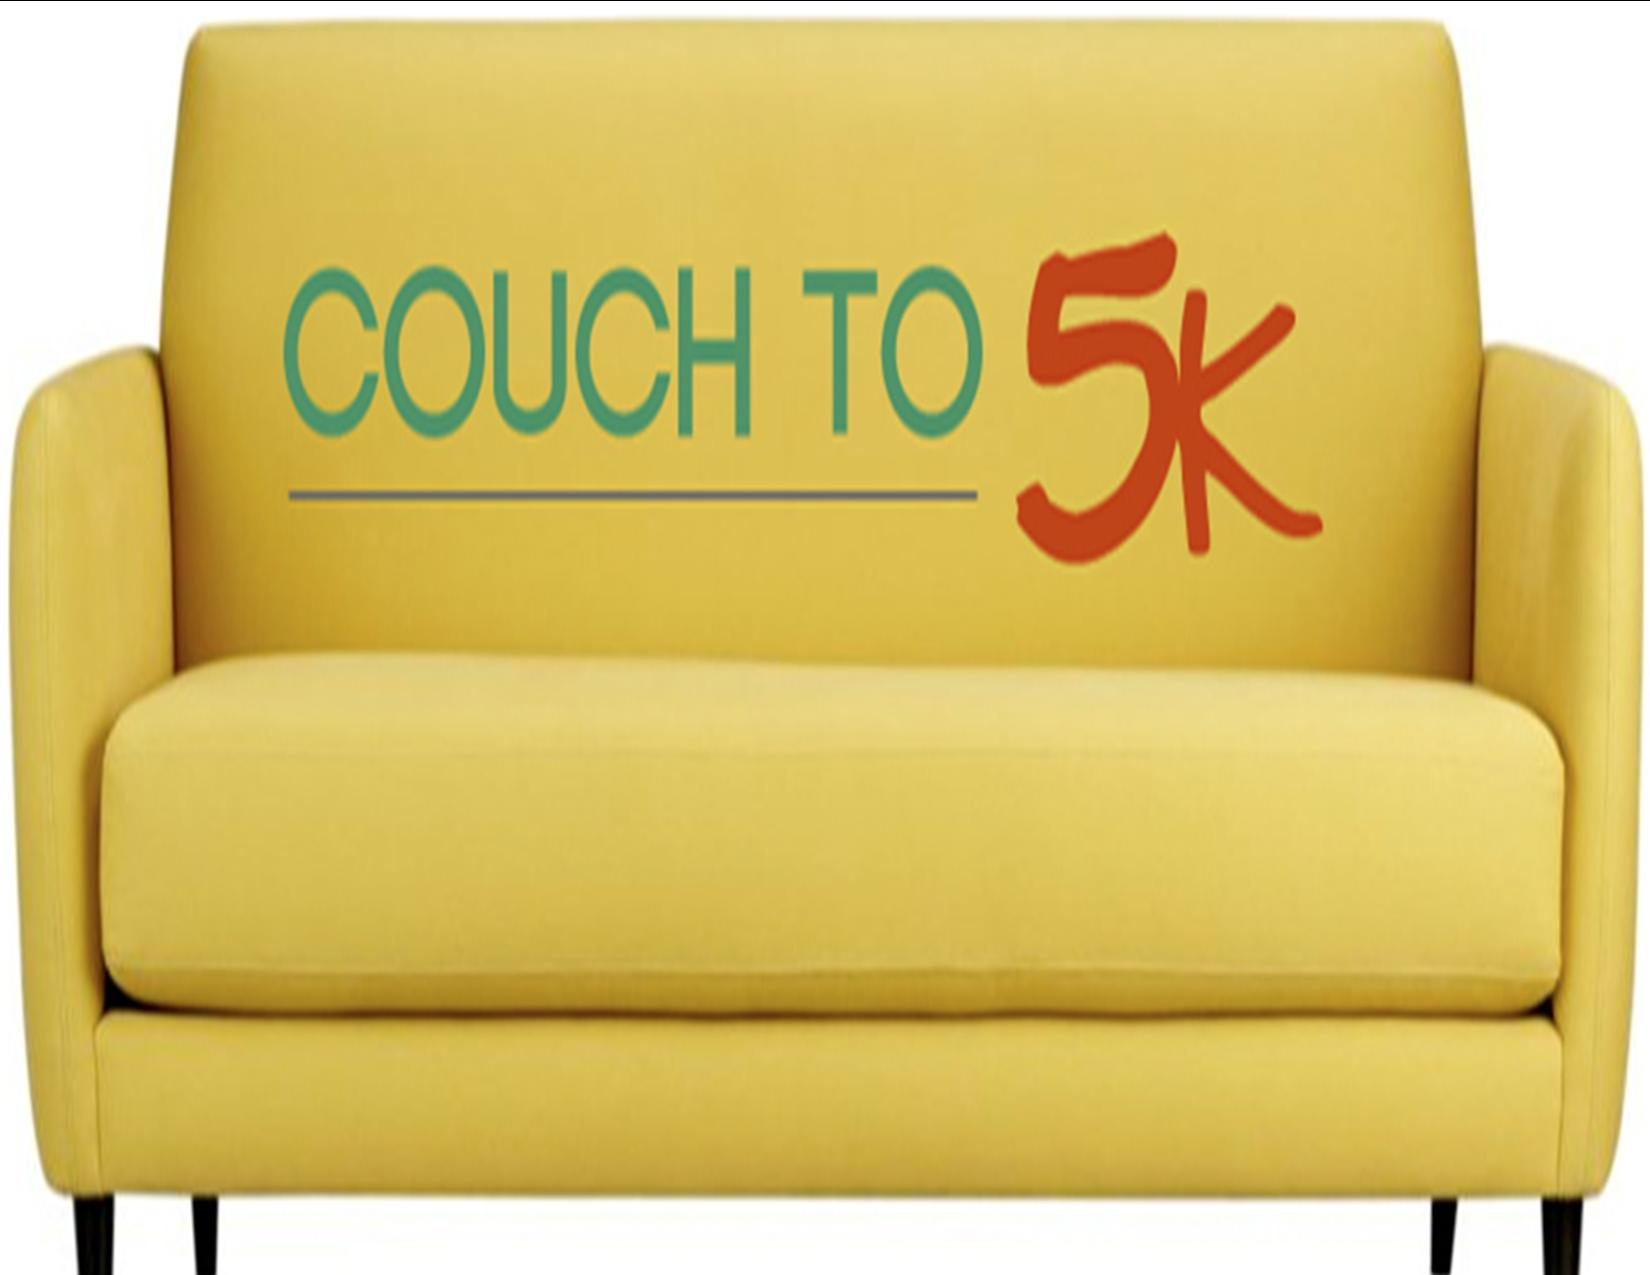 How I Ran My First 5k with the Couch to 5k Program